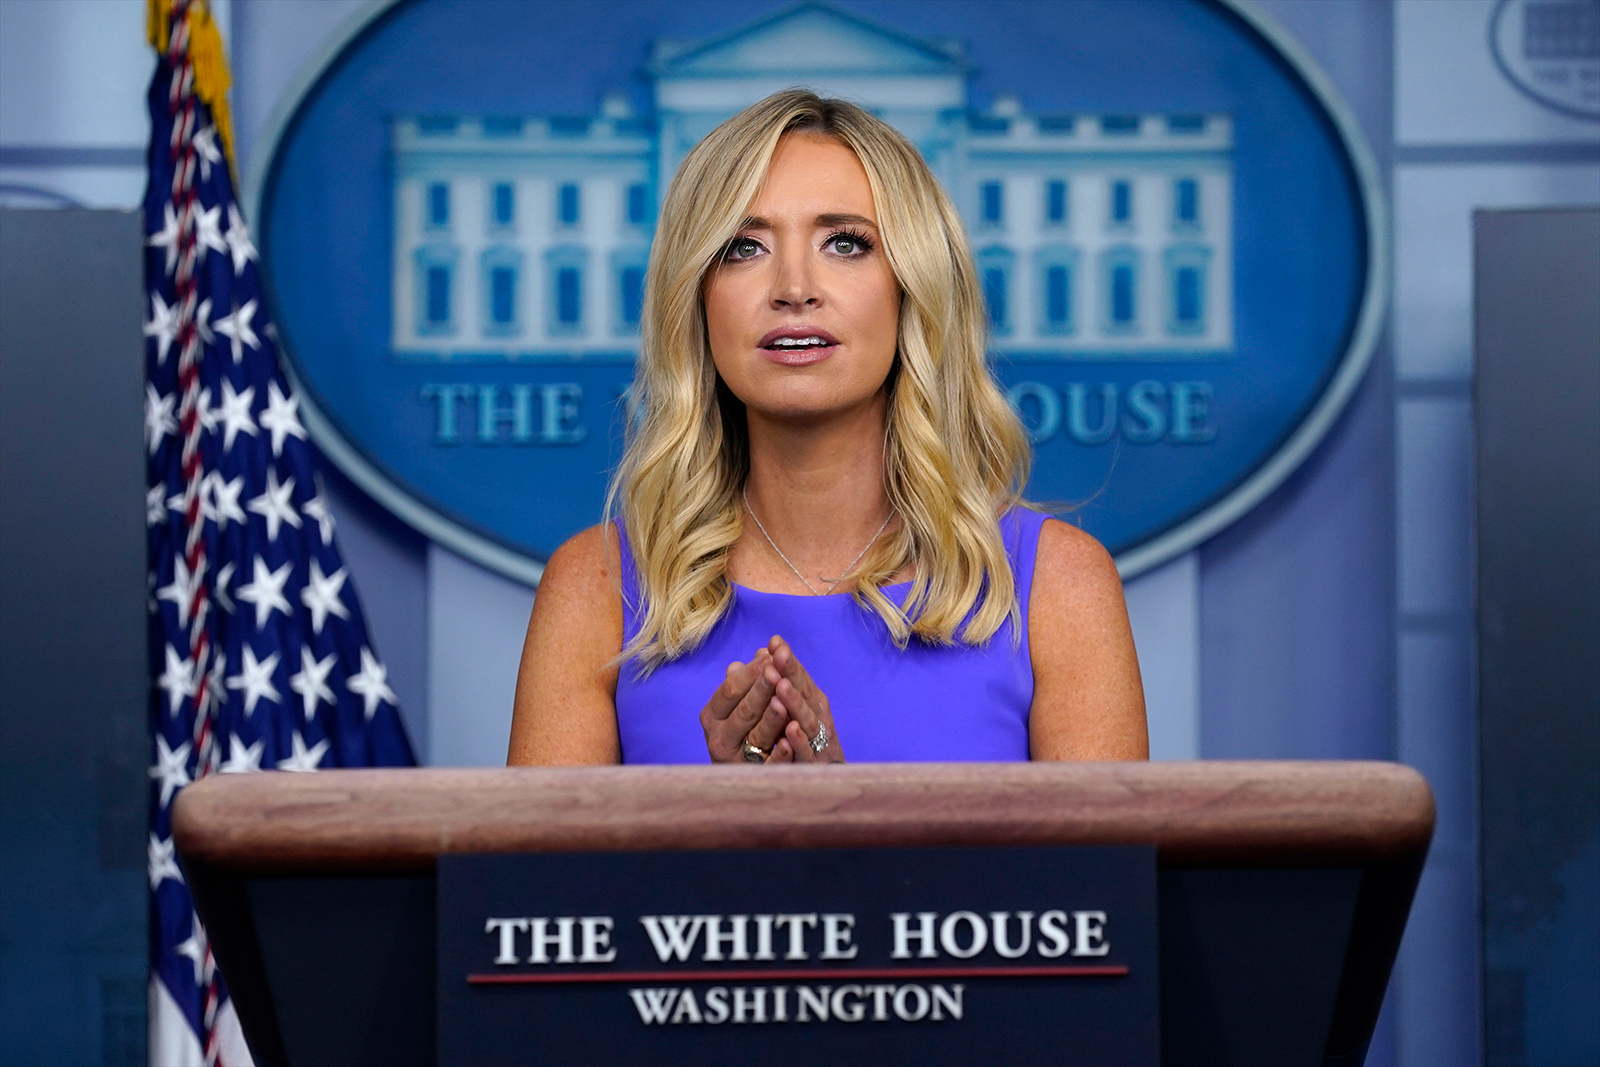 White House press secretary Kayleigh McEnany speaks during a briefing at the White House in Washington, on May 28.